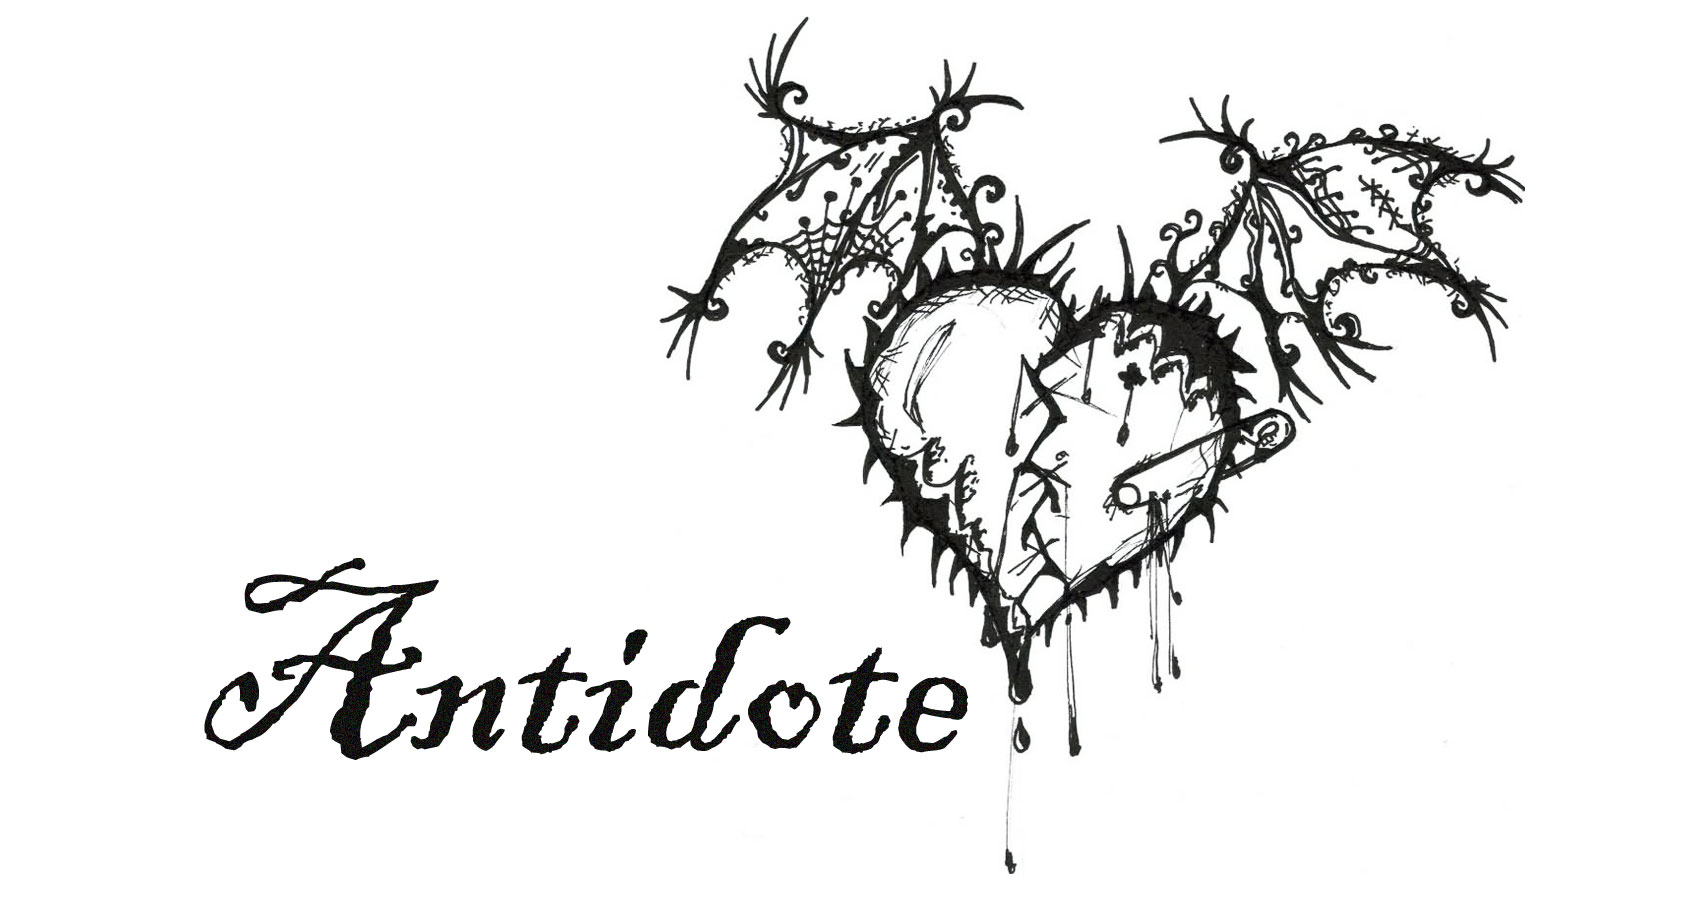 Antidote written by Seorin Kae at Spillwords.com